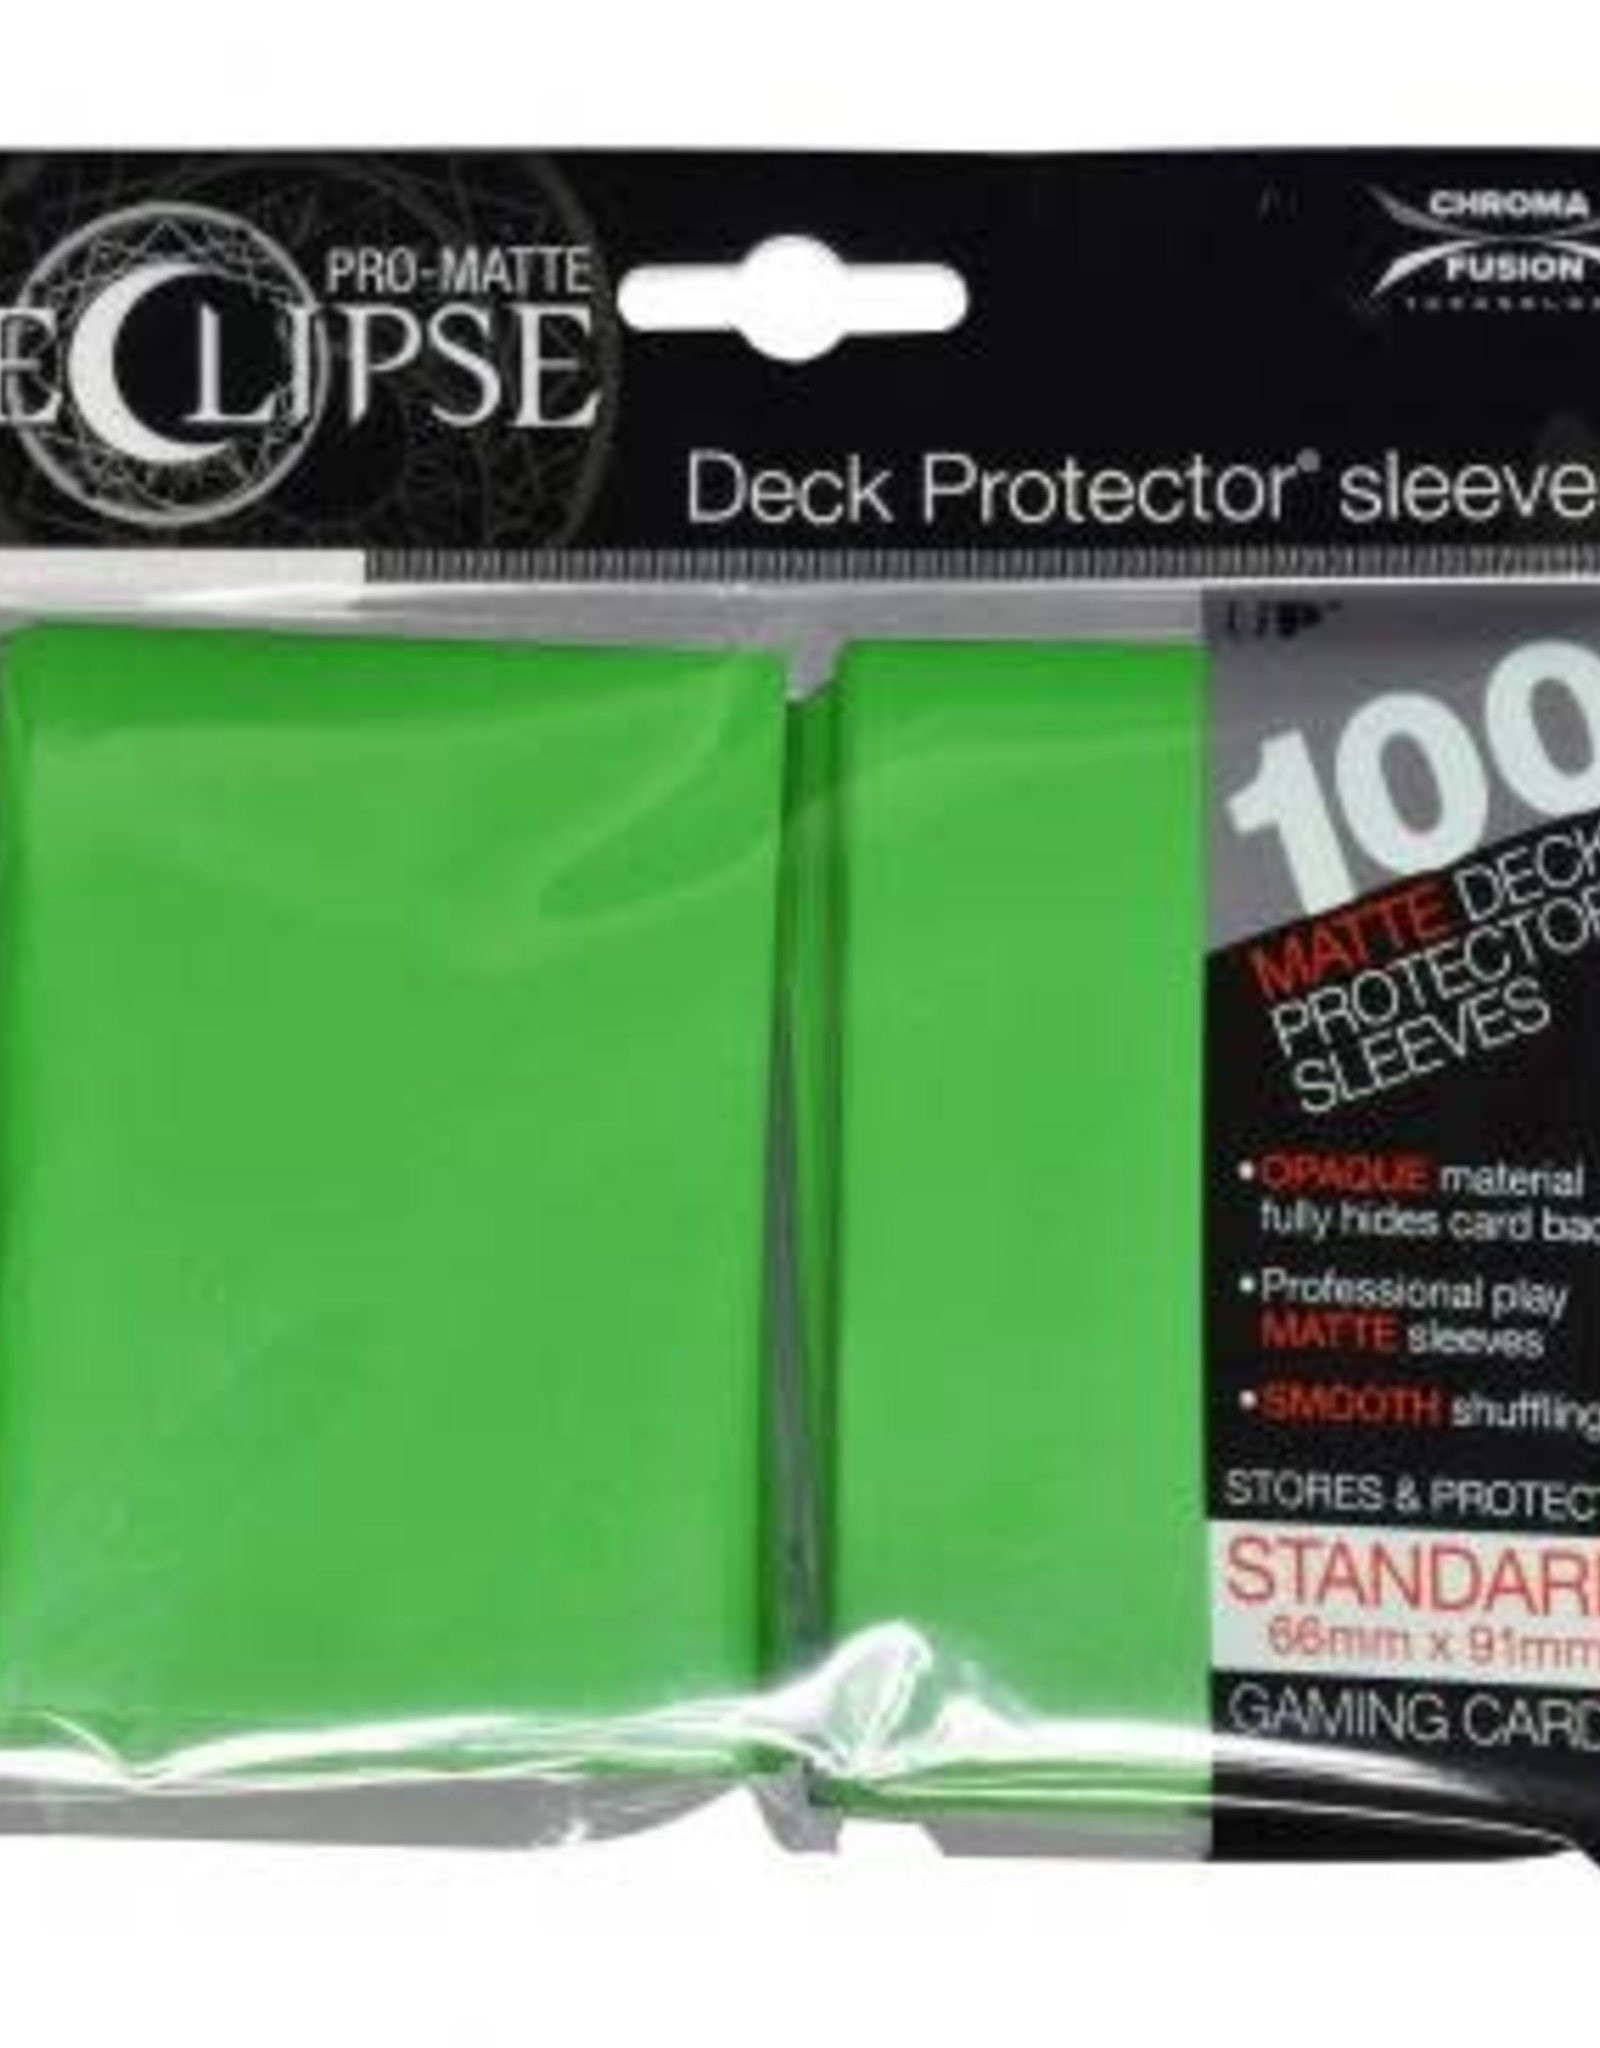 Ultra PRO PRO-Matte Eclipse Lime Green 100ct Sleeves